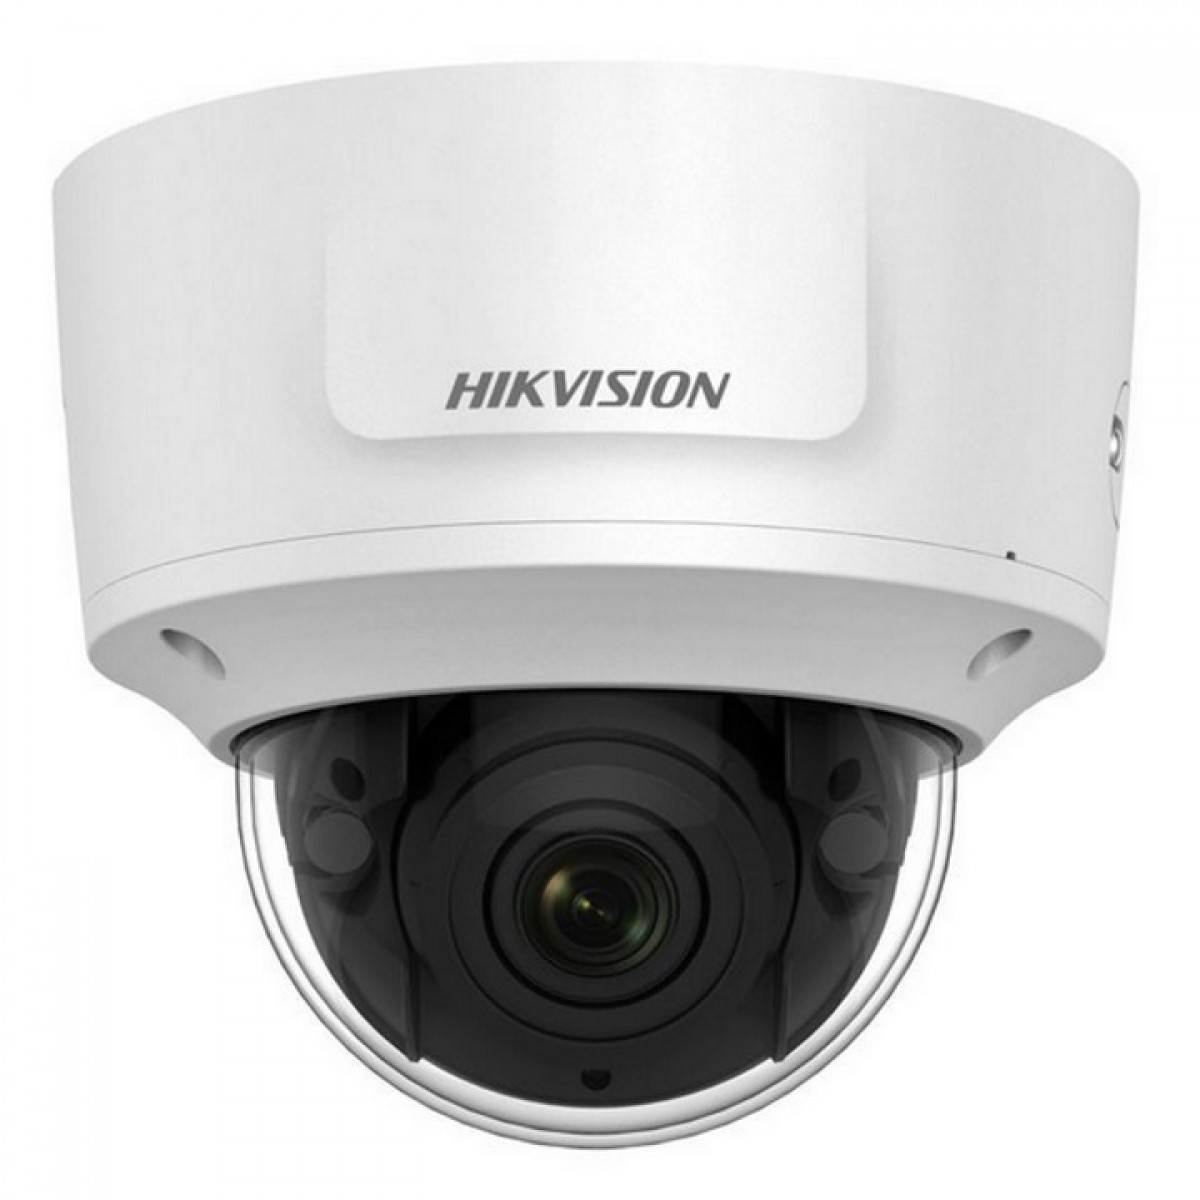 Hikvision DS-2CD2743G0-IZS 4MP 2.8-12MM VF Motorized Lens H.265 30M IR SD-Card Audio Alarm POE Dome IP Network Security CCTV Camera